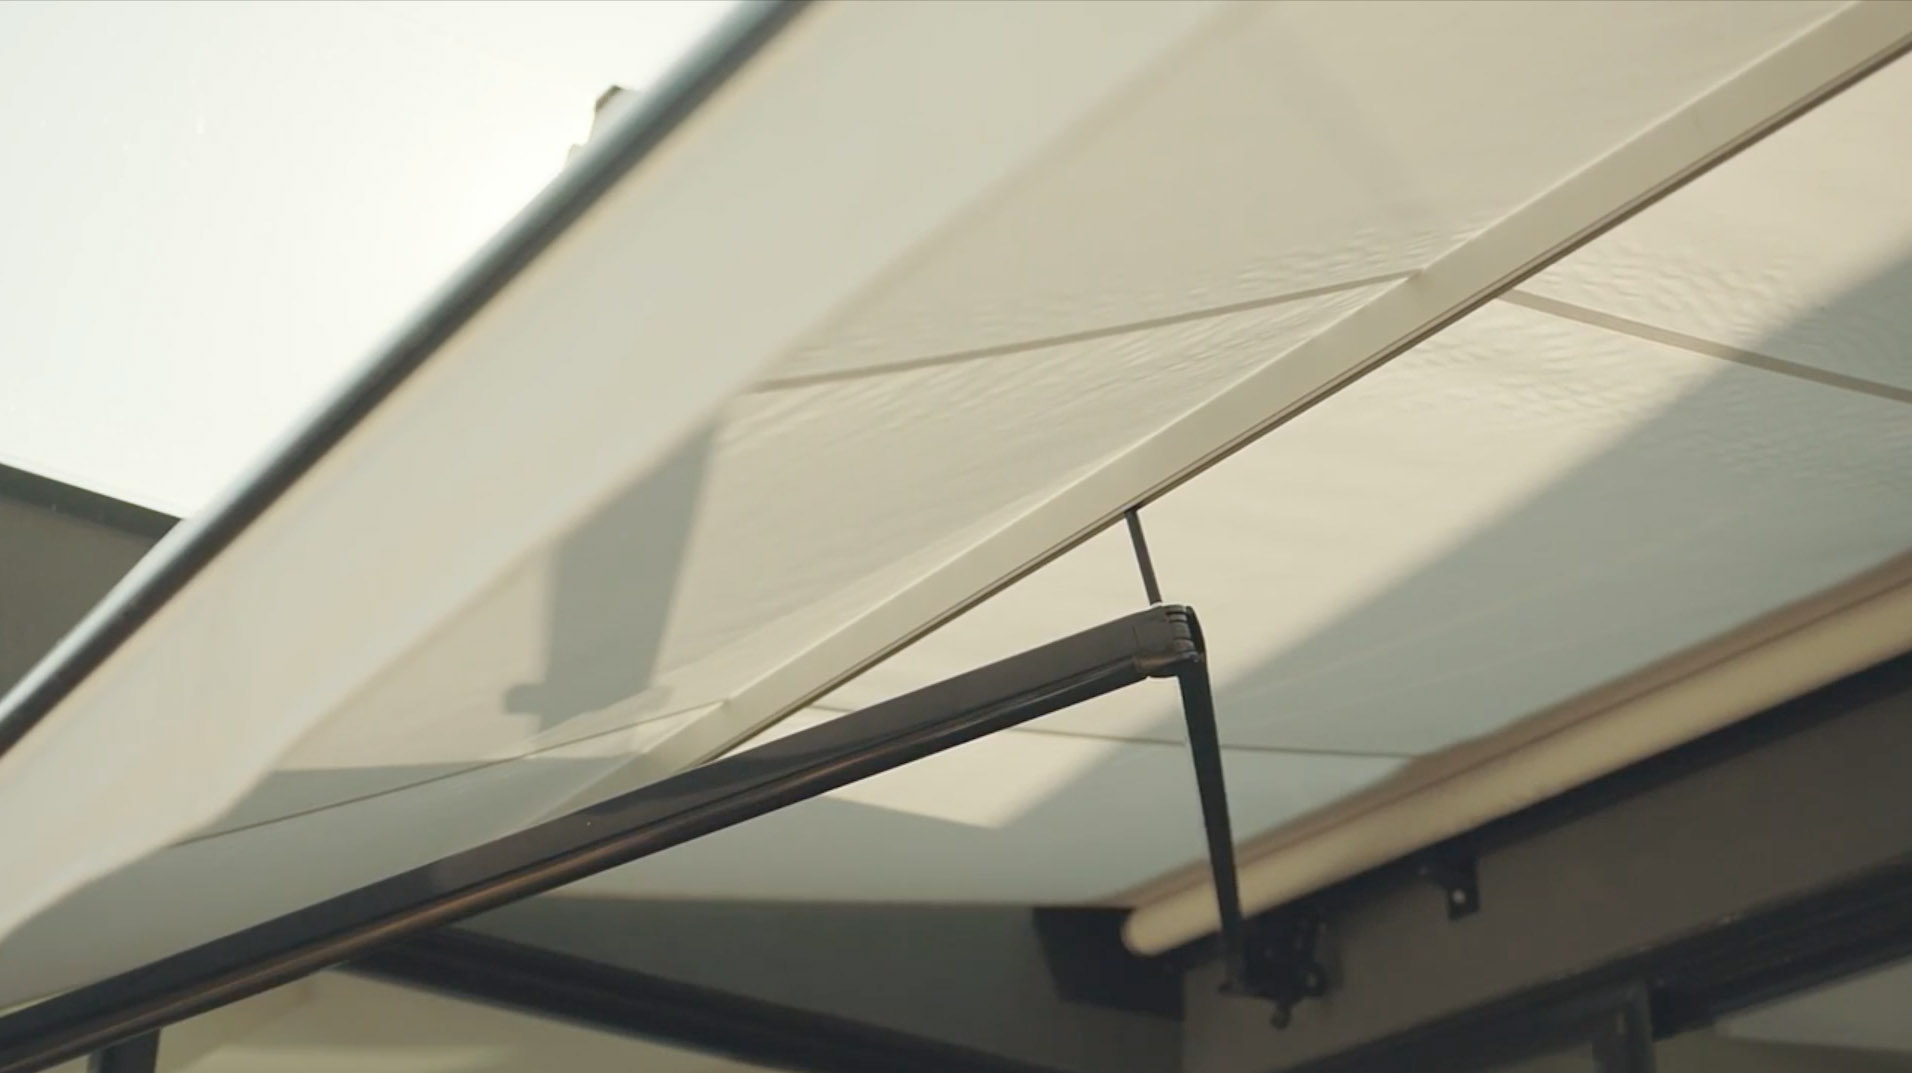 Motorize Your Retractable Awning And Automate Home With Somfy